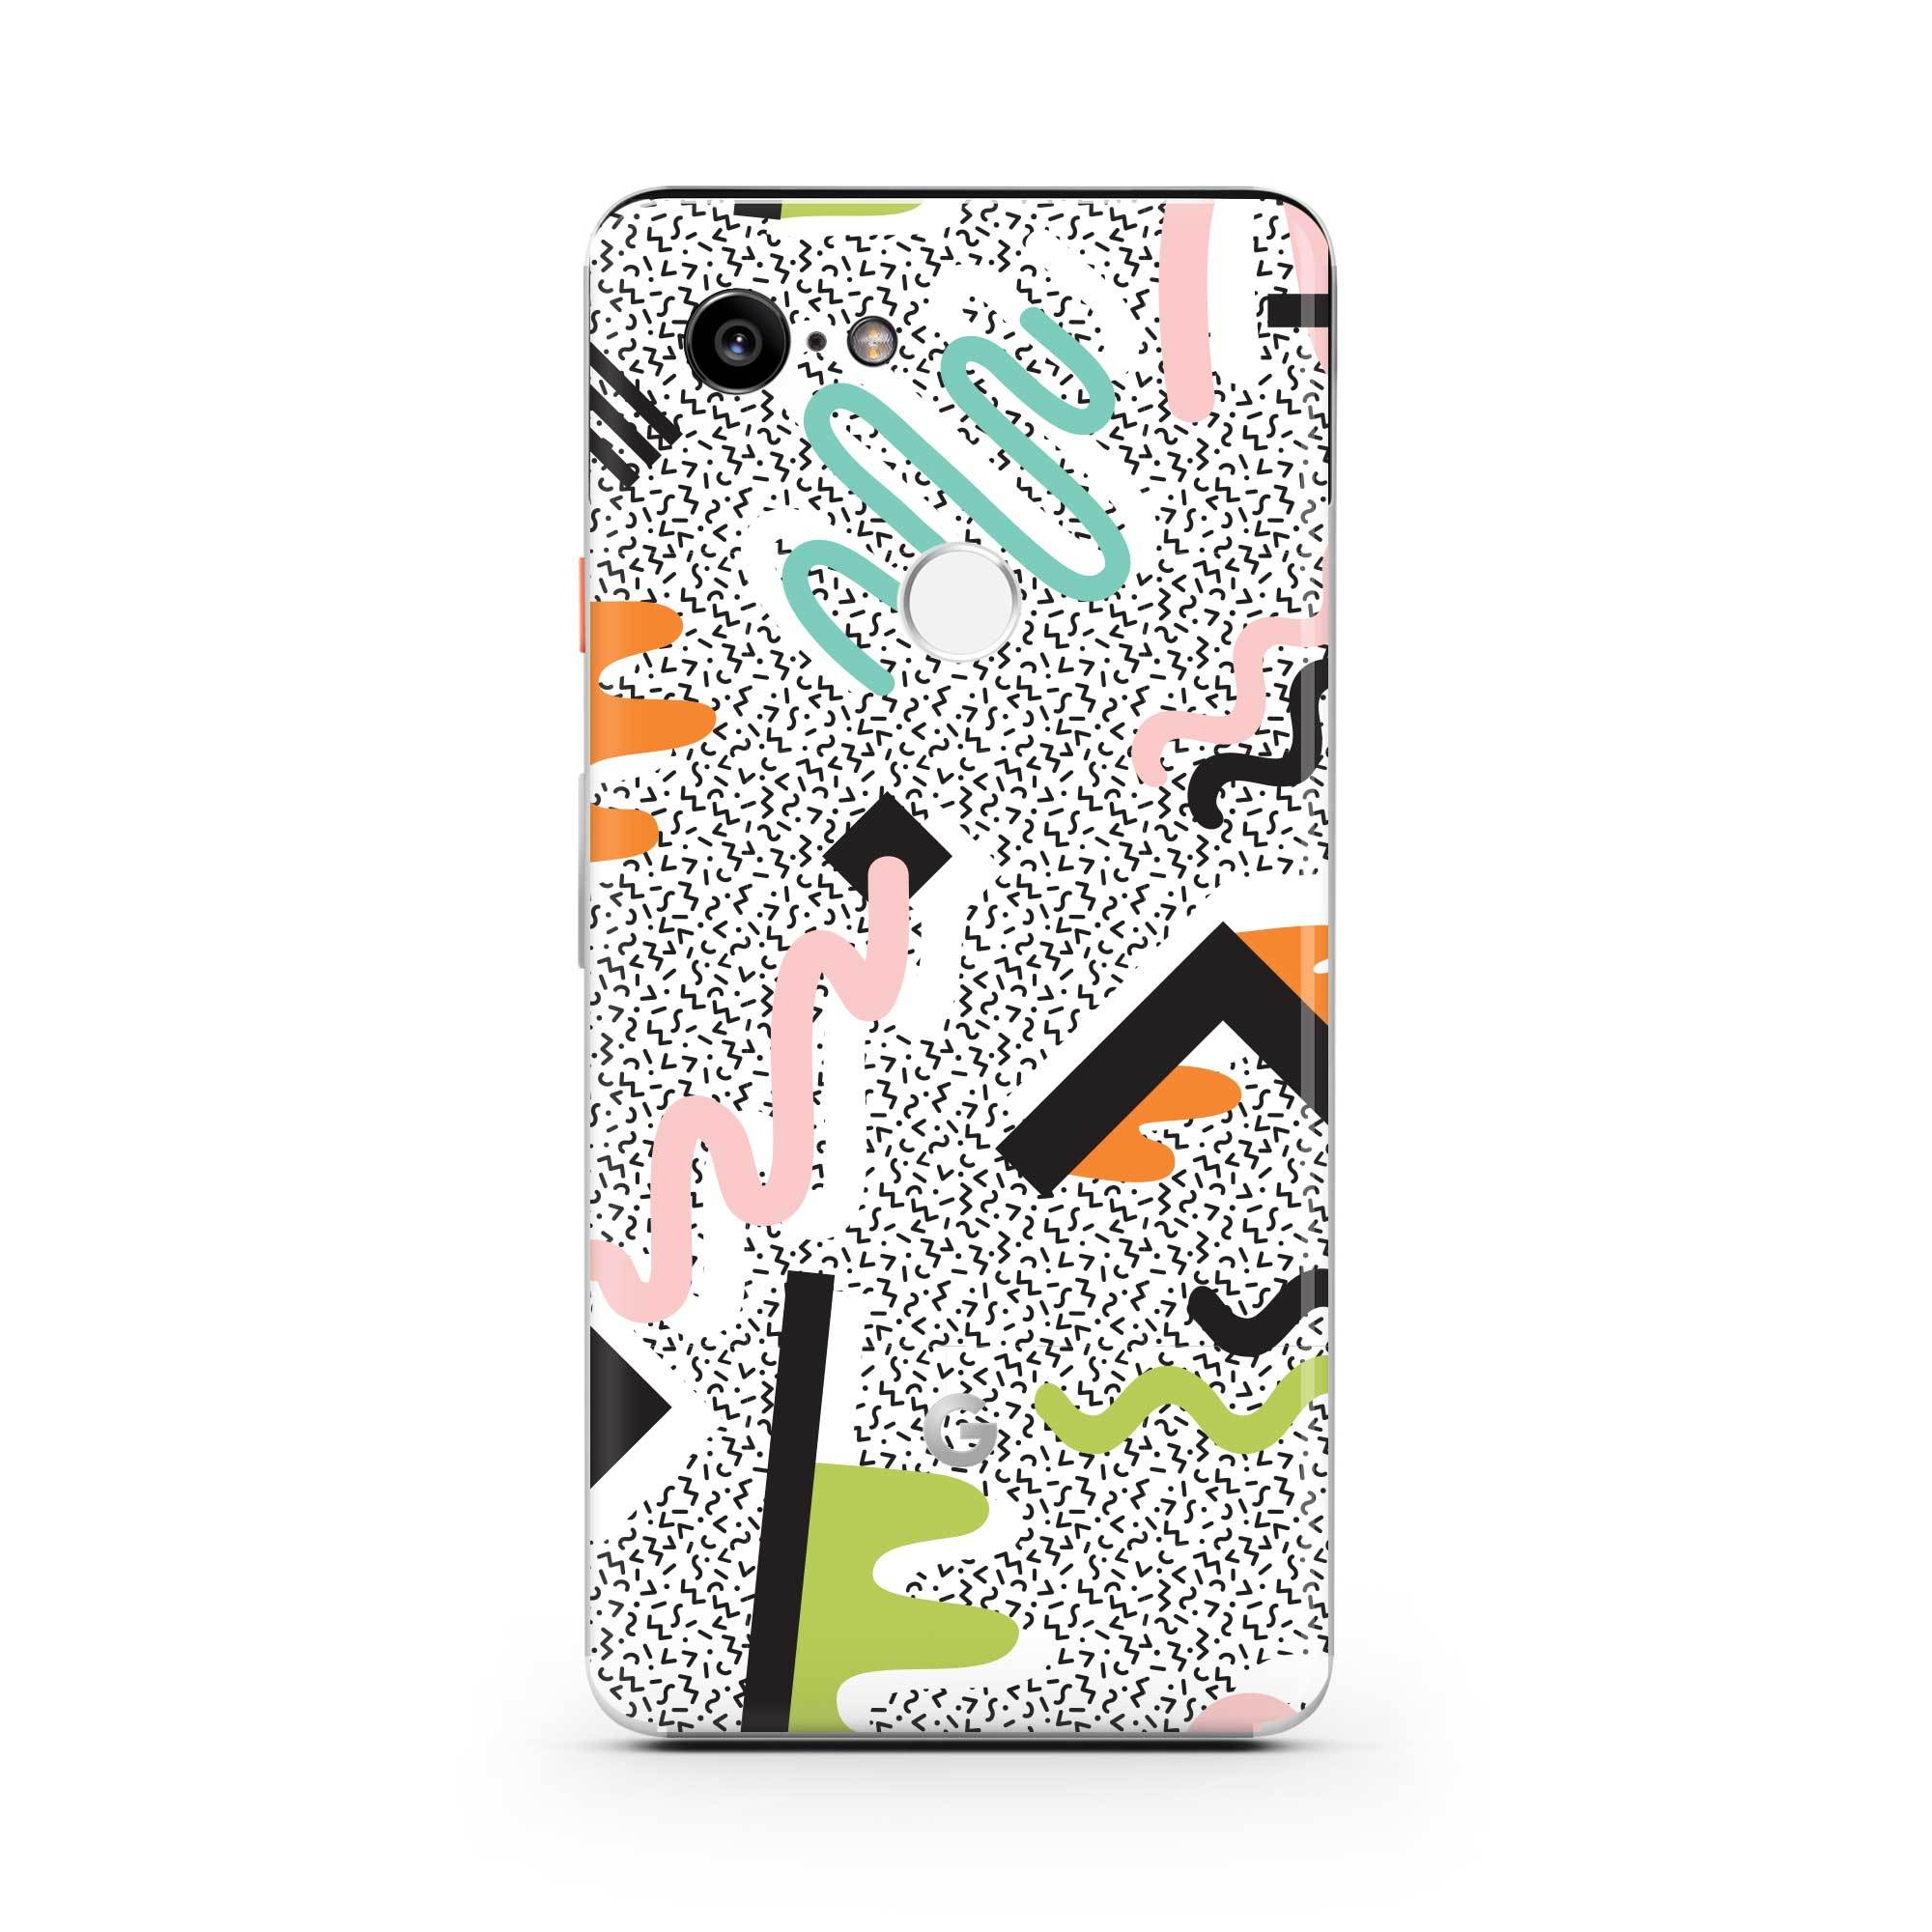 True Memphis Pixel 3a XL Skin + Case